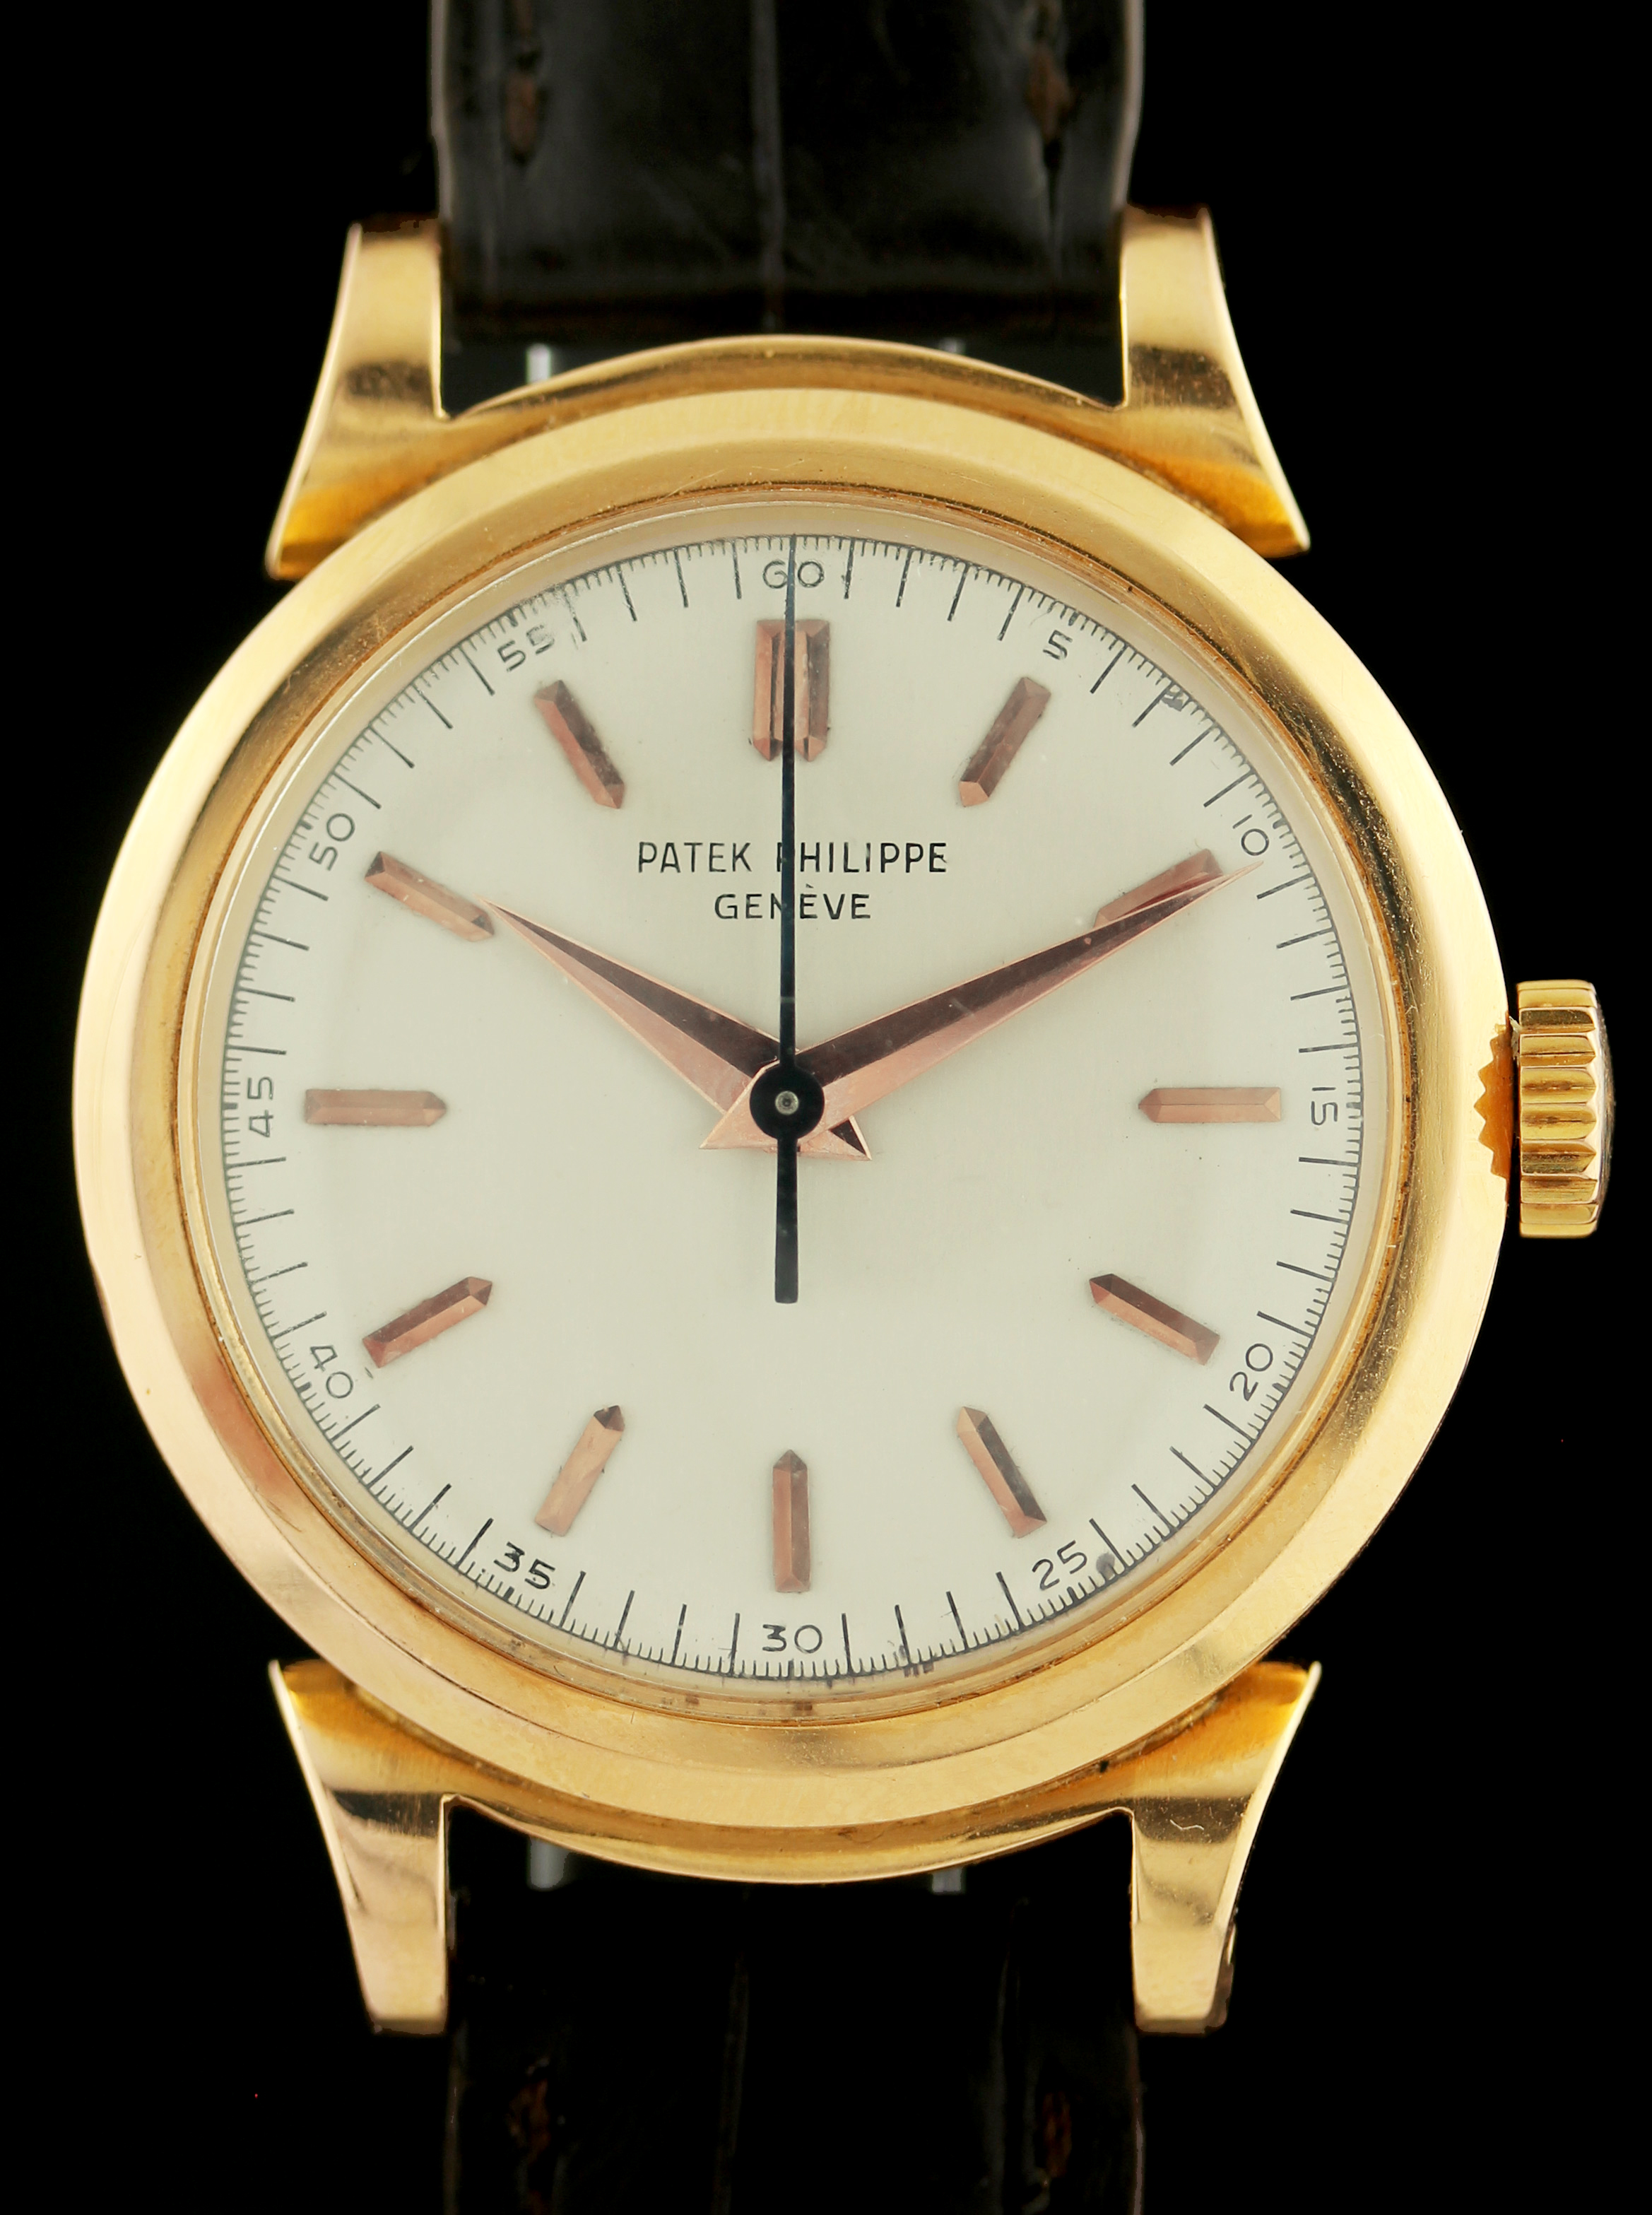 PATEK PHILIPPE Ref. 1491 in pink gold